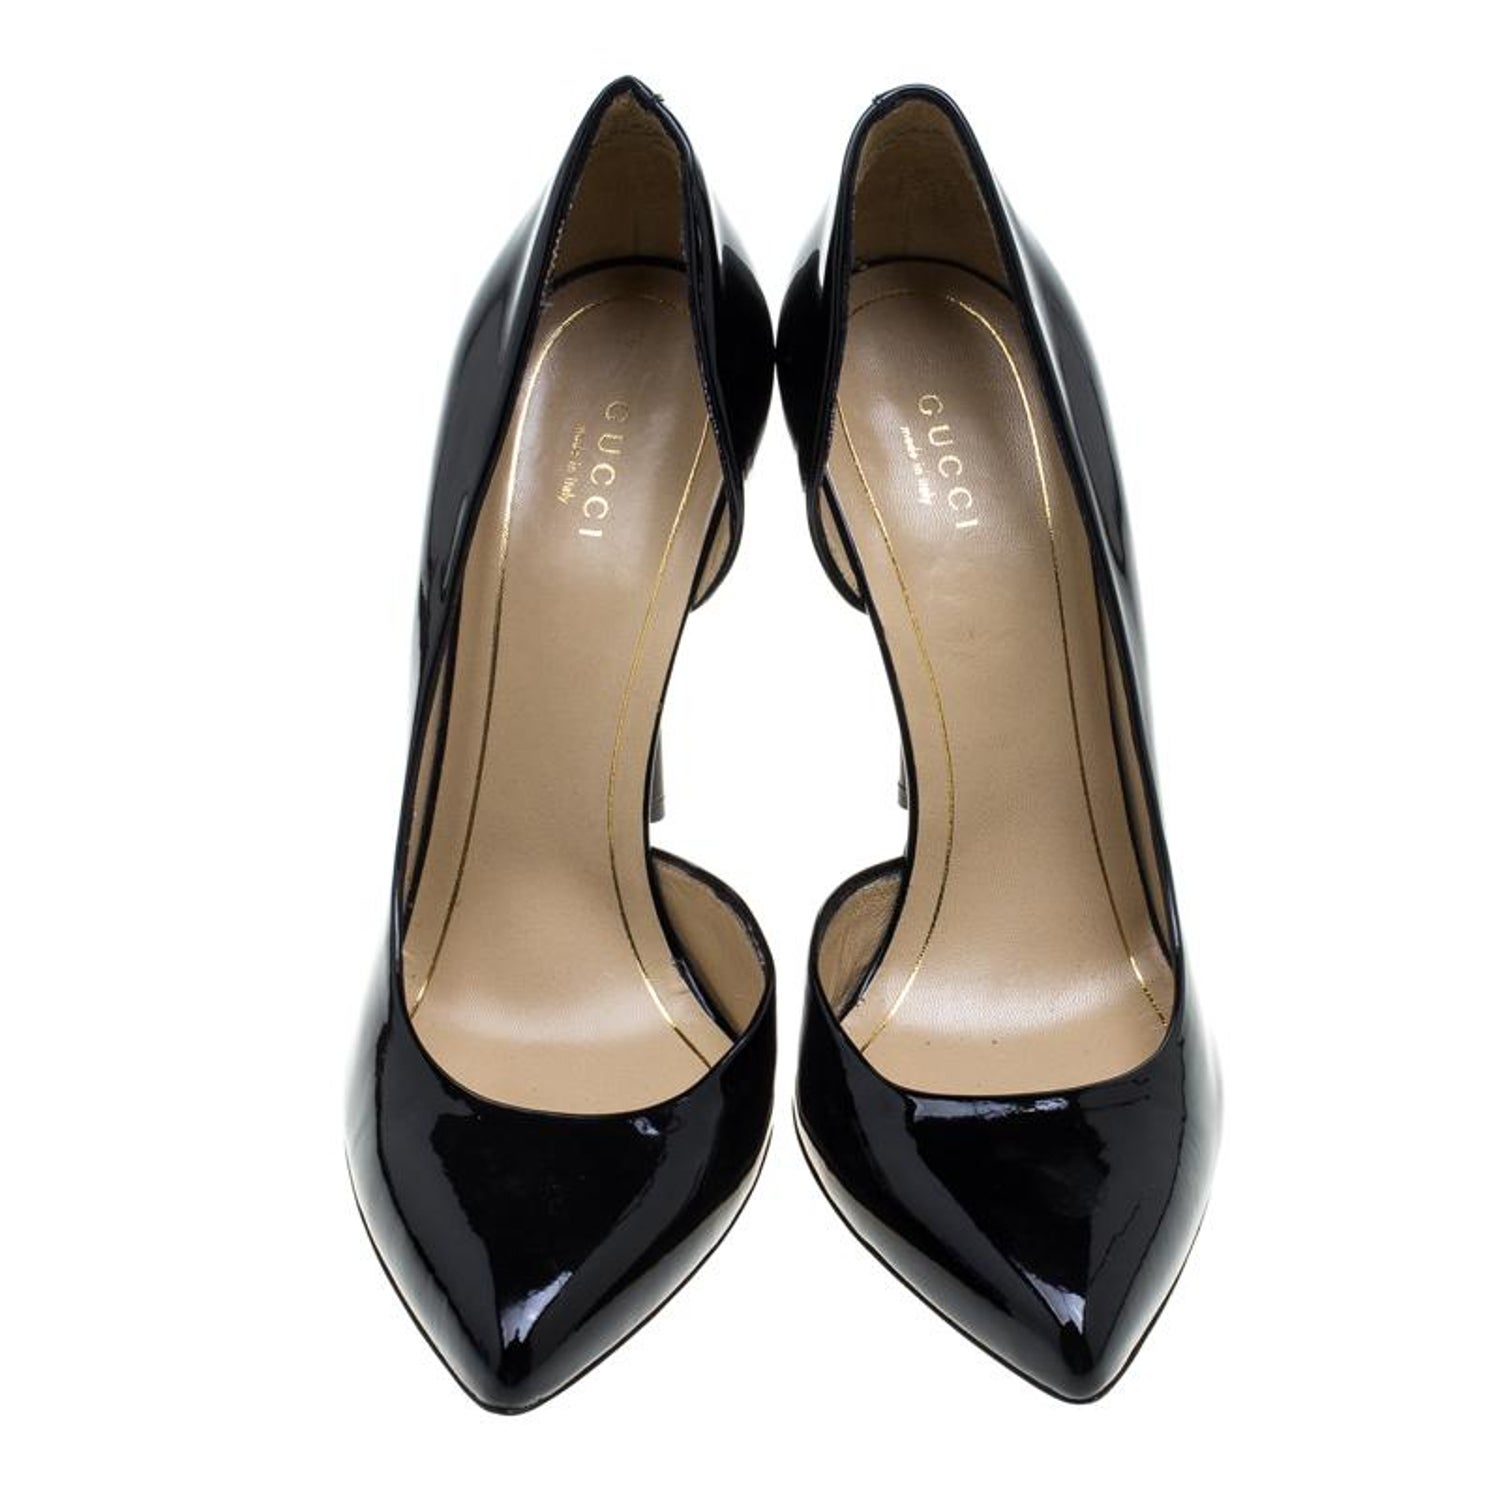 1cfbc0d8b57 Gucci Black Patent Leather Noah Pointed Toe D Orsay Pumps Size 39 at 1stdibs